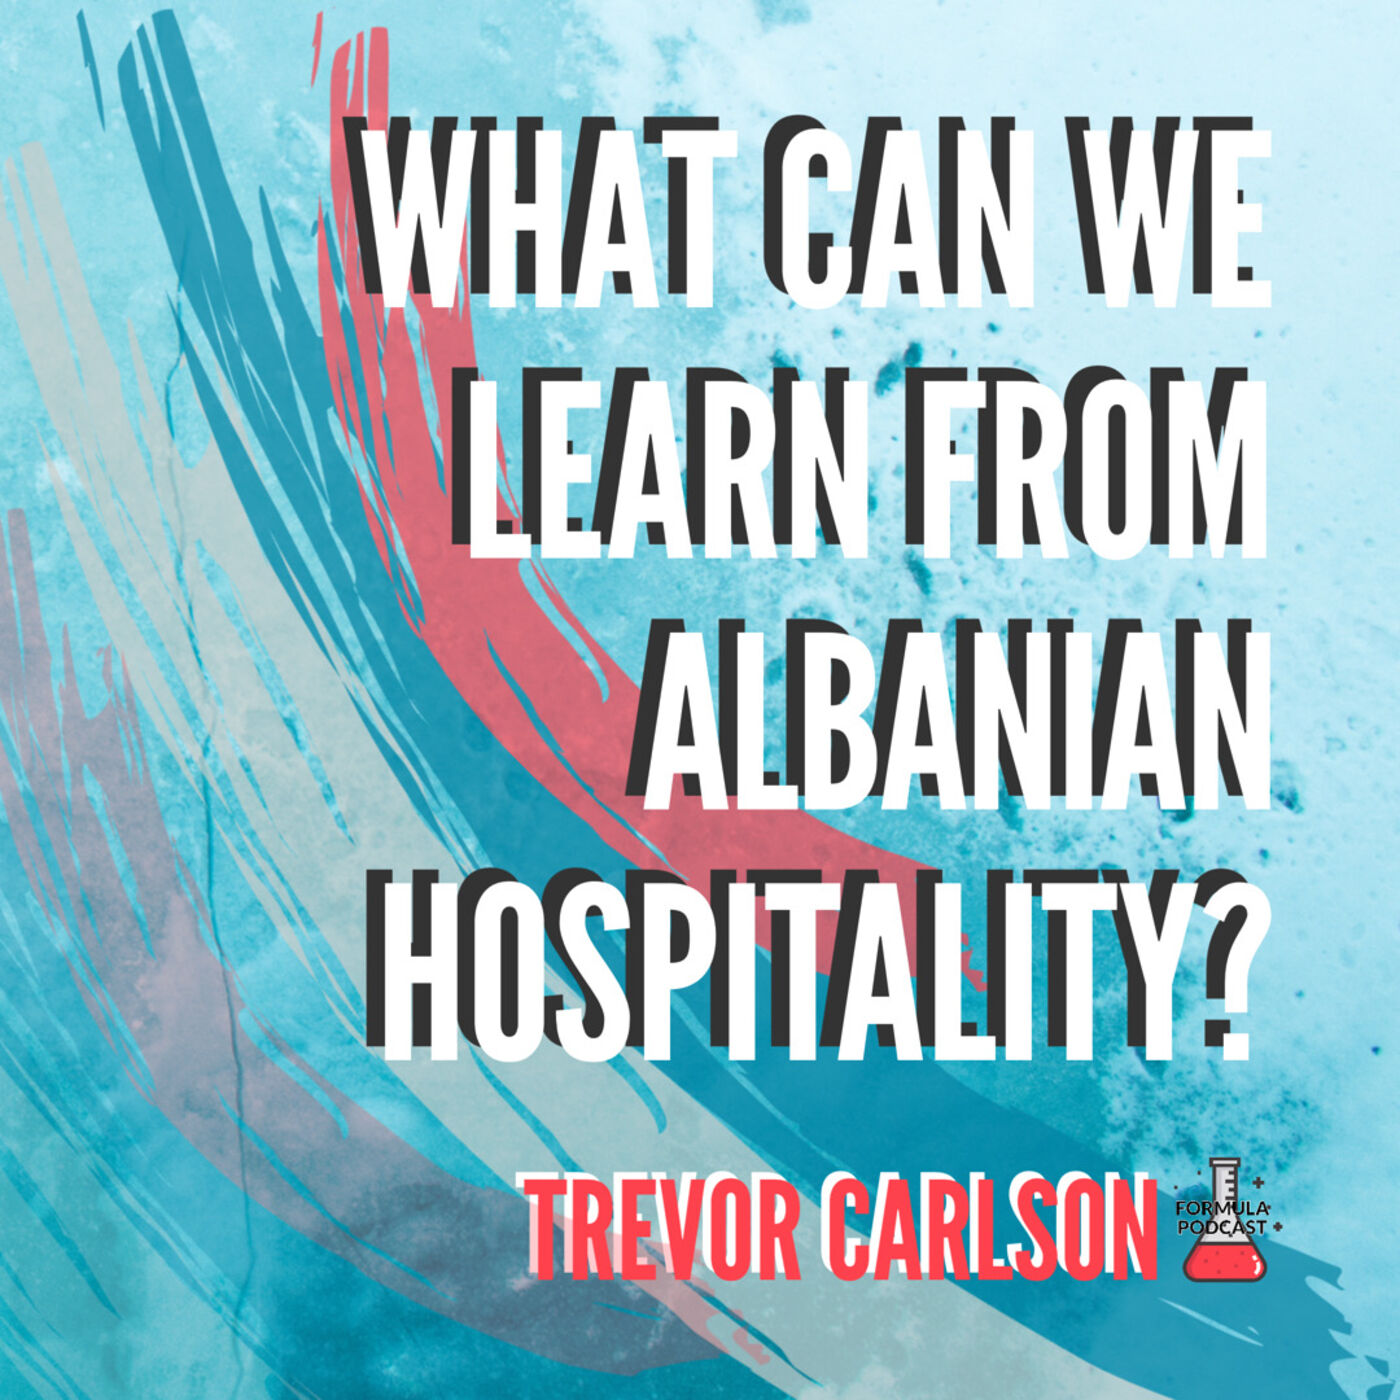 What Can We Learn from Albanian Hospitality? - #96